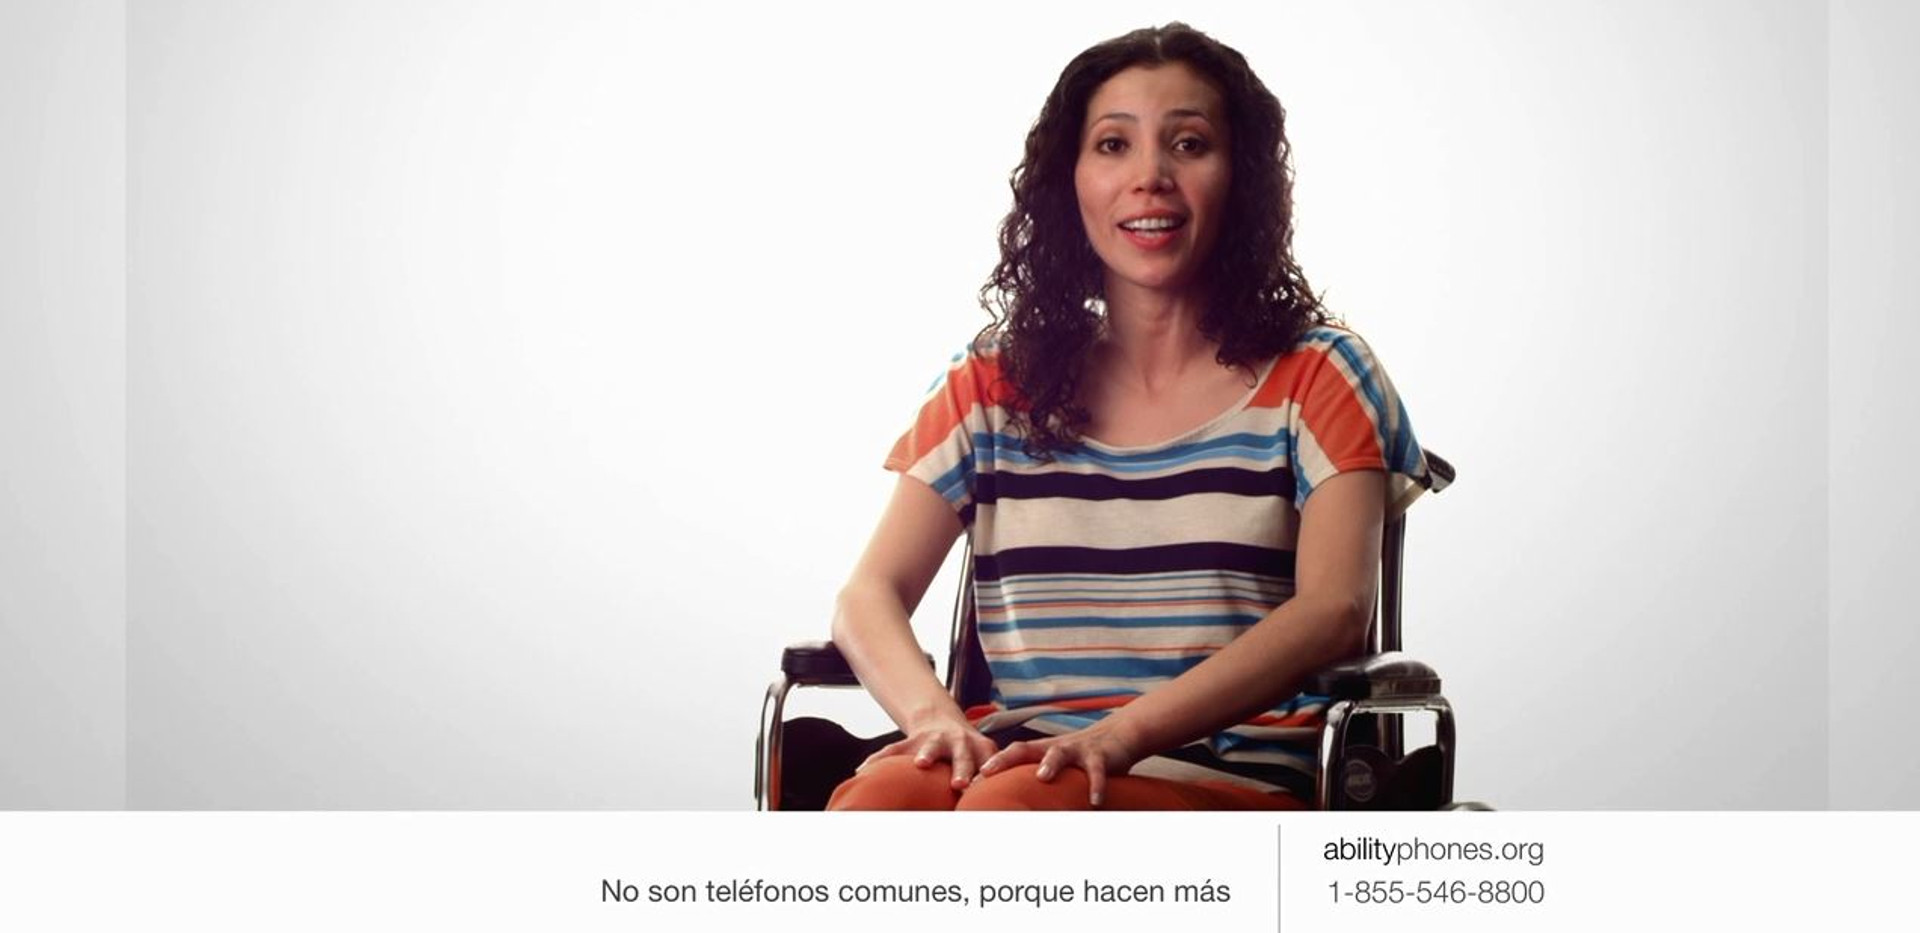 Ability Phones for People with Limited Mobility